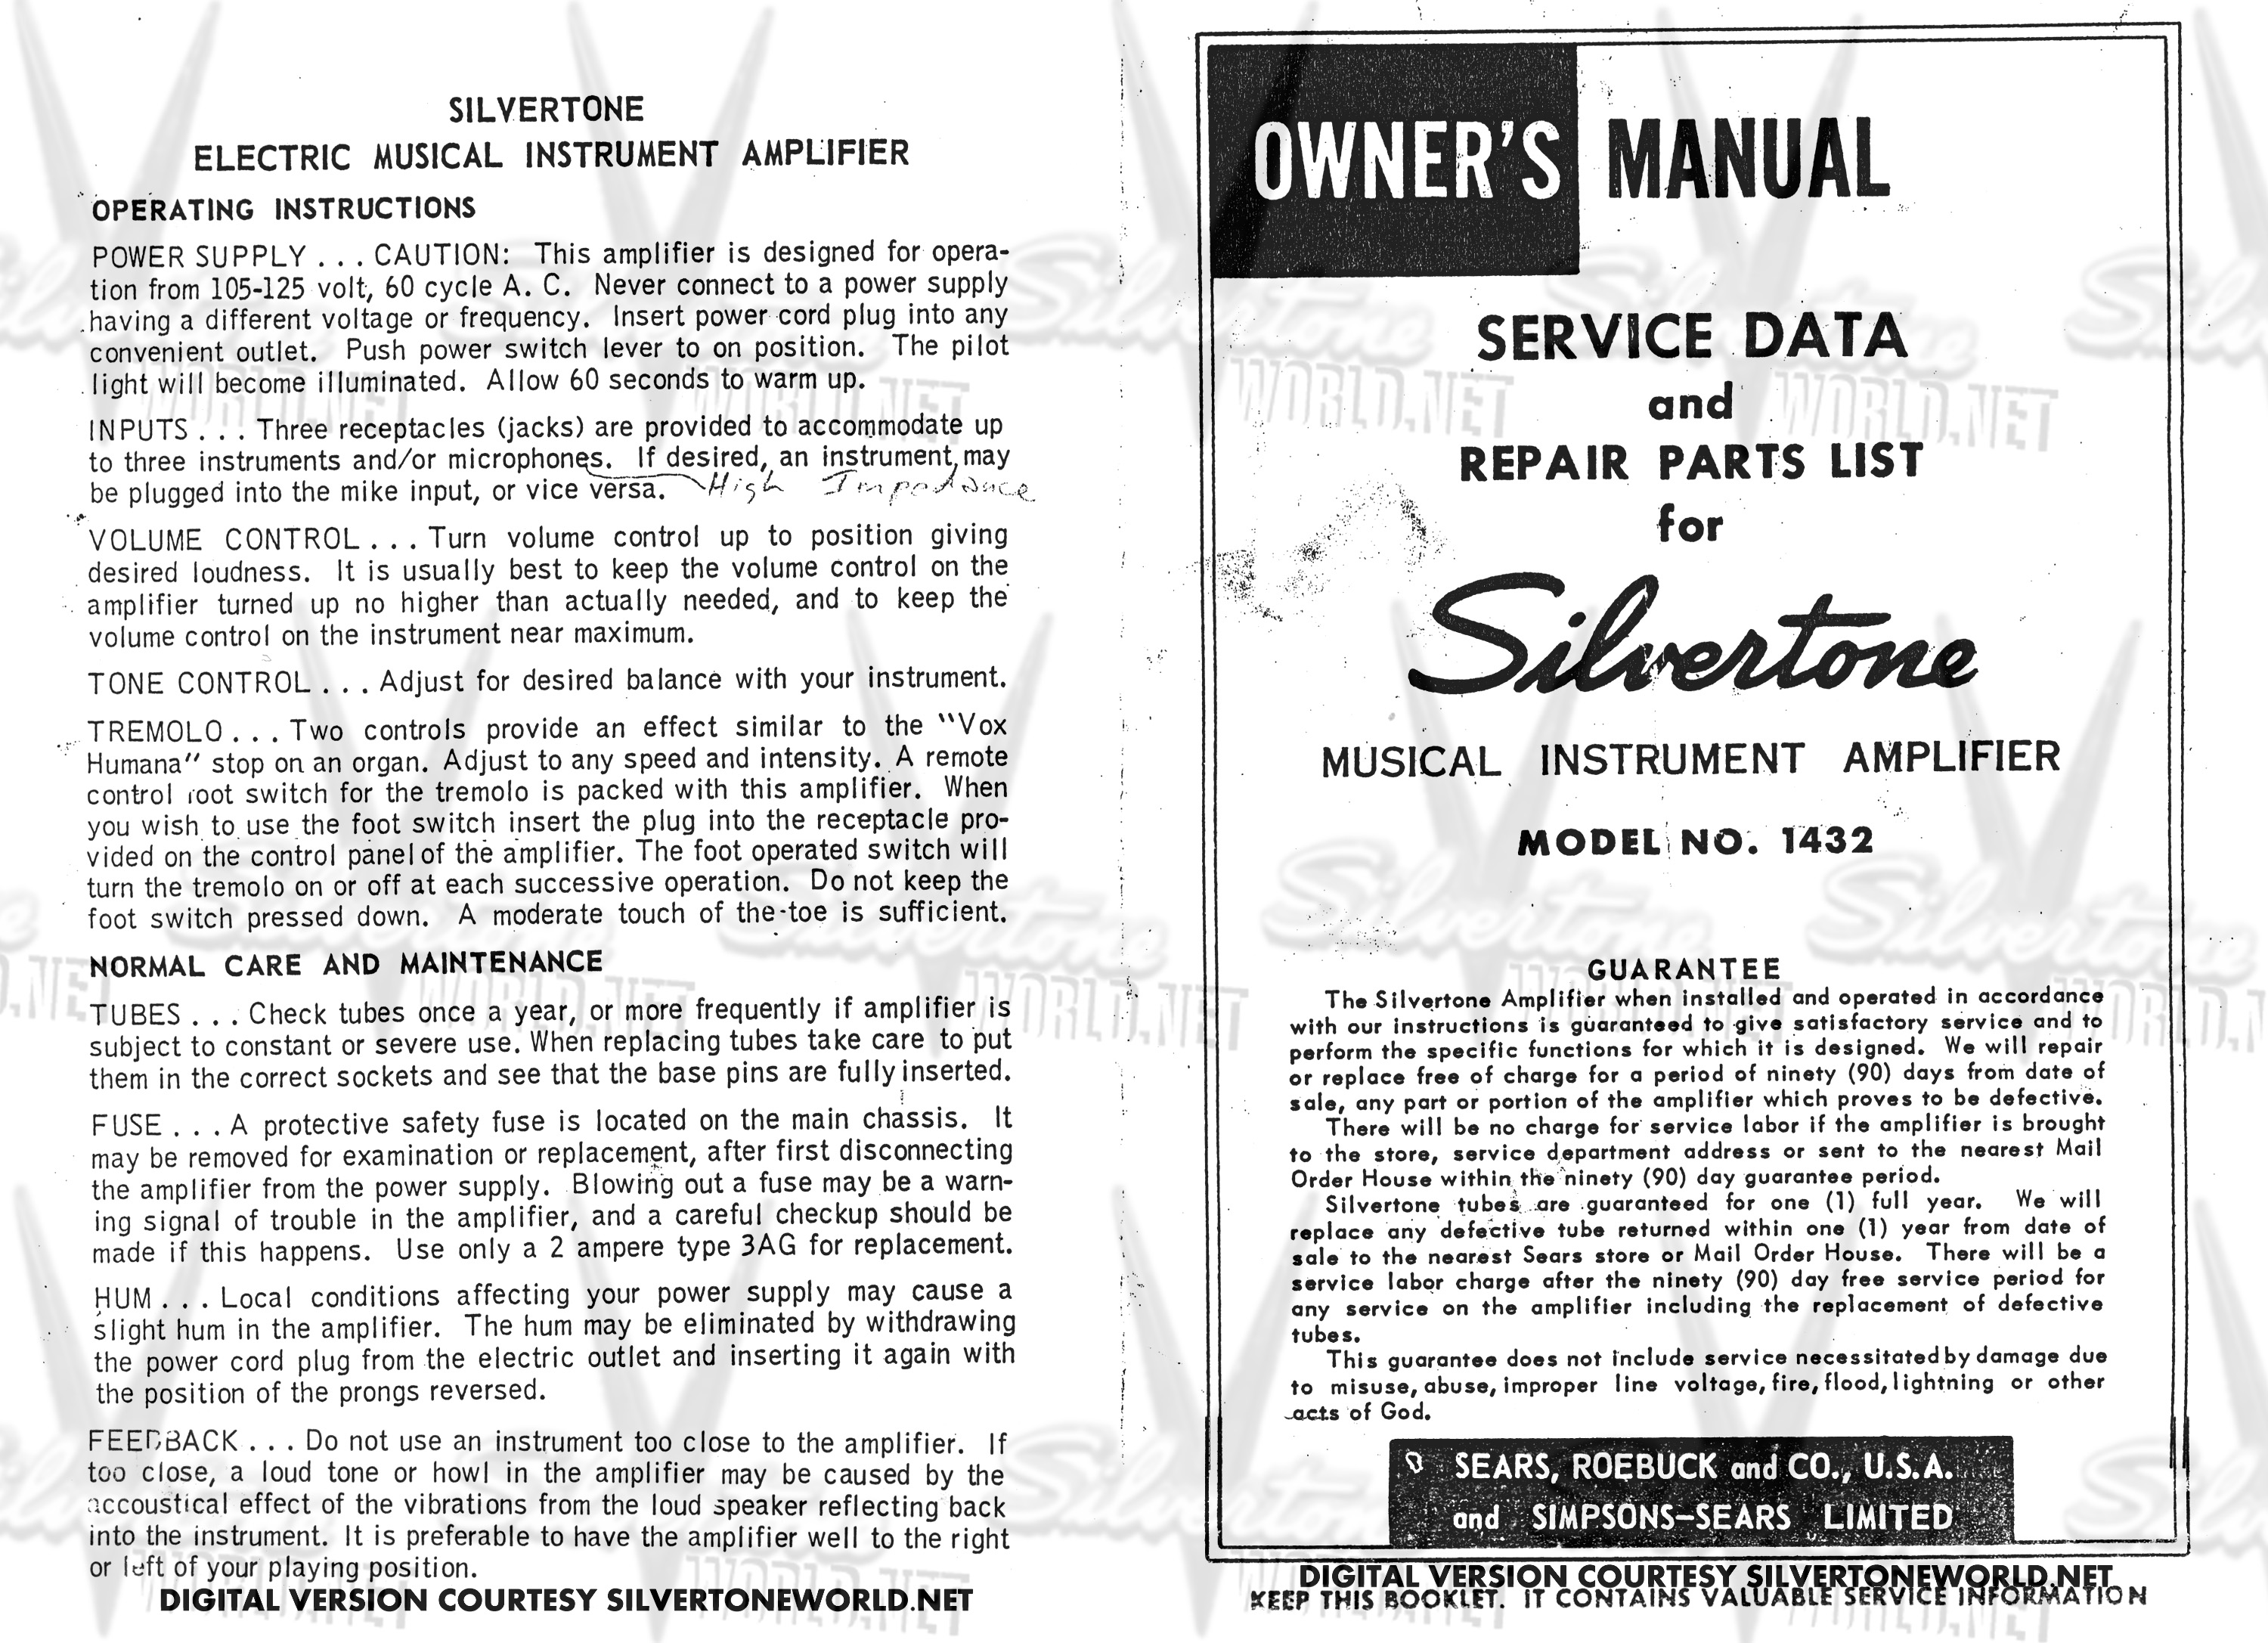 ford 900 wiring diagram silvertone world - division 57 - schematics, manuals and ...